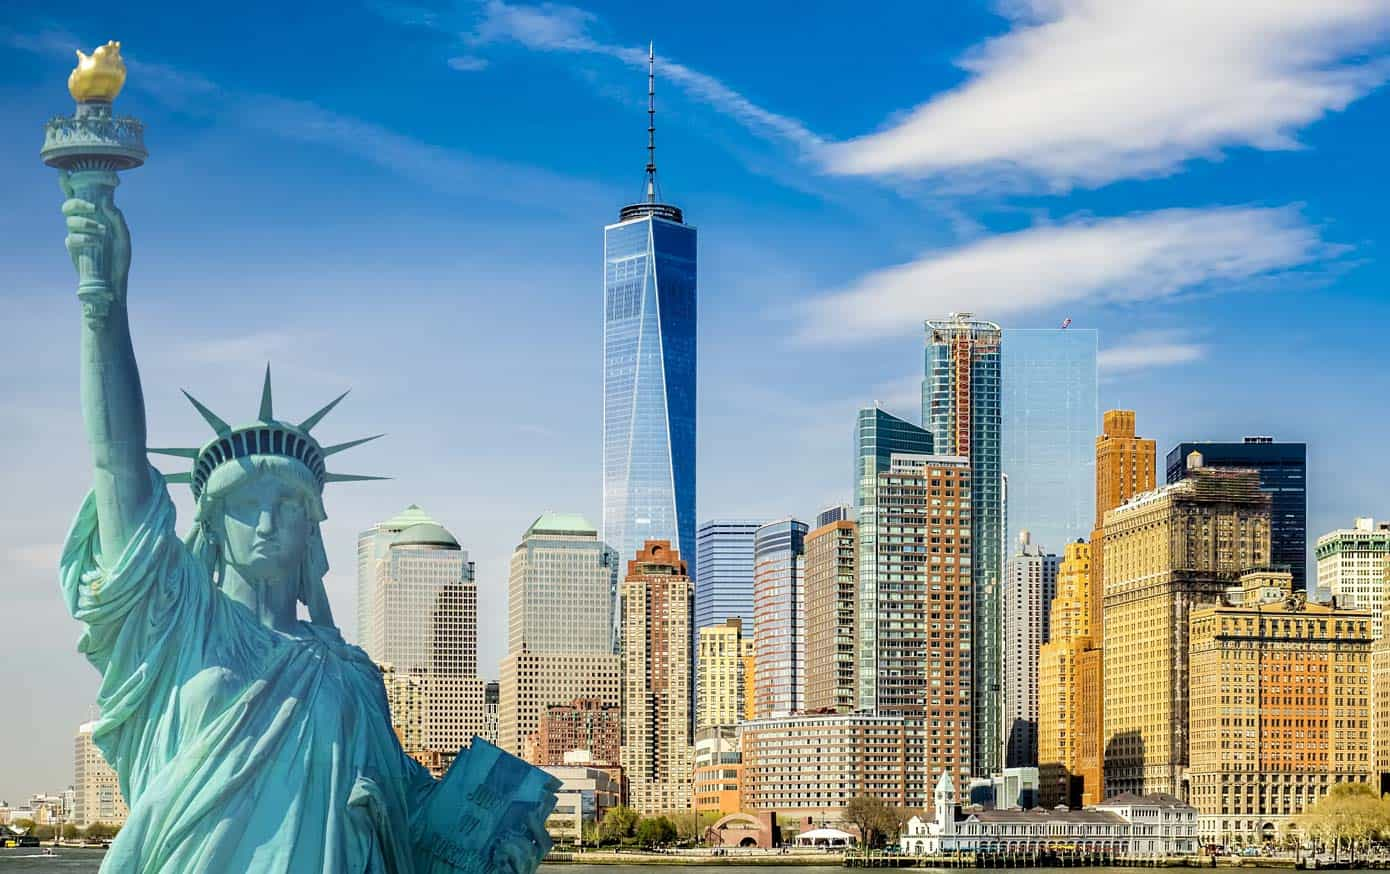 The New York City skyline with the Statue of Liberty in front of the World Trade Center.